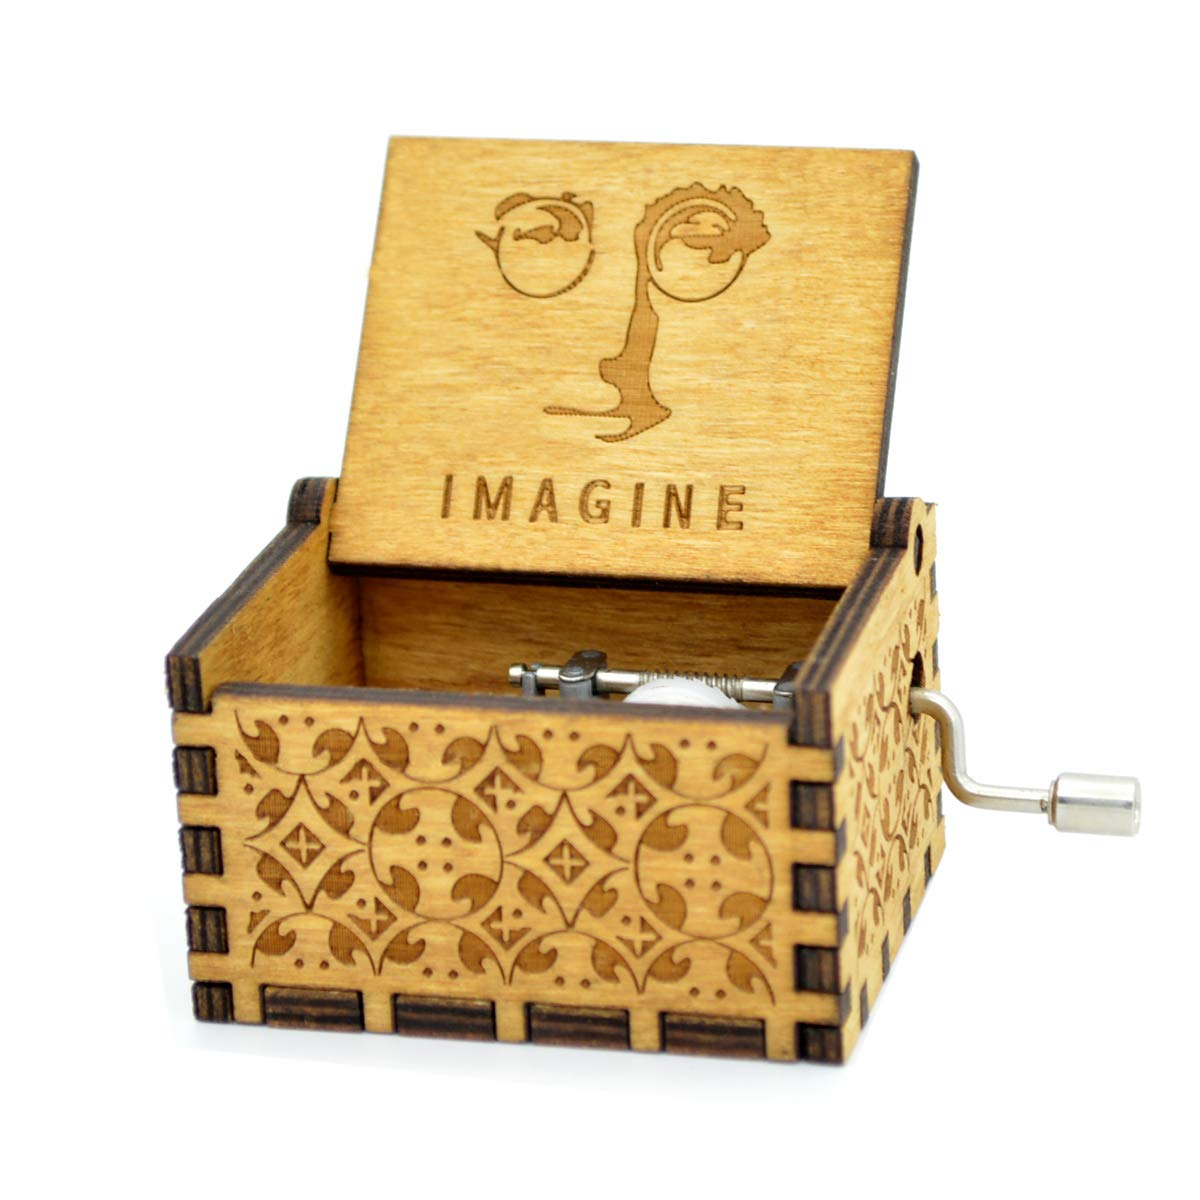 Imagine Music Box- 18 Note Mechanism Antique Carved Wooden Music Box Crafts Desk Decoration (Imagine)